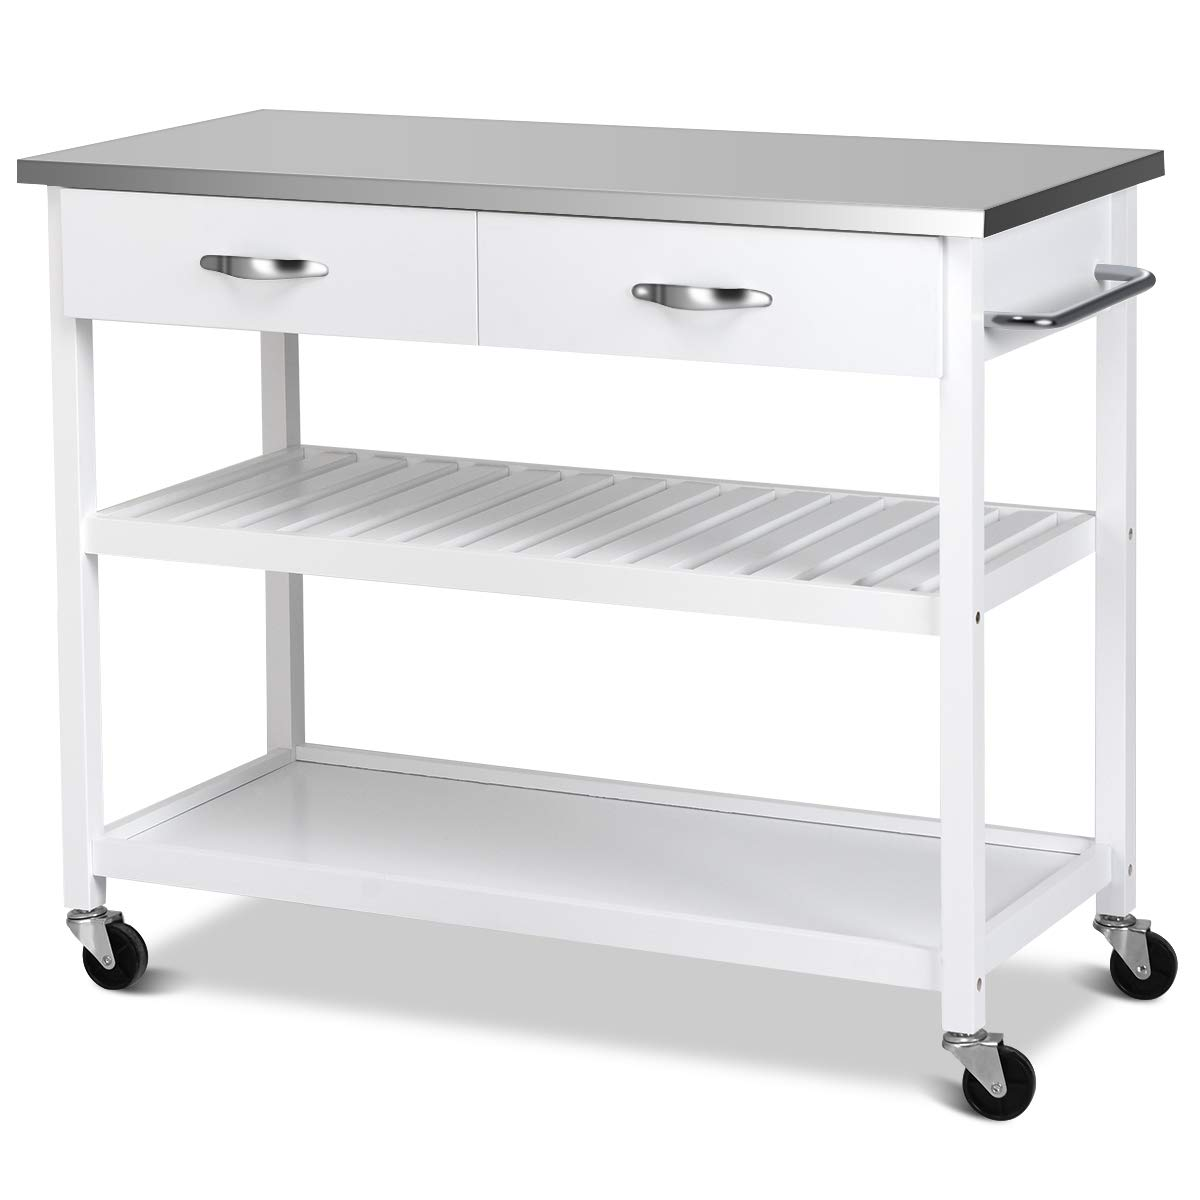 Giantex Kitchen Trolley Cart Rolling Island Cart Serving Cart Large Storage with Stainless Steel Countertop, Lockable Wheels, 2 Drawers and Shelf Utility Cart for Home and Restaurant, (White) by Giantex (Image #4)